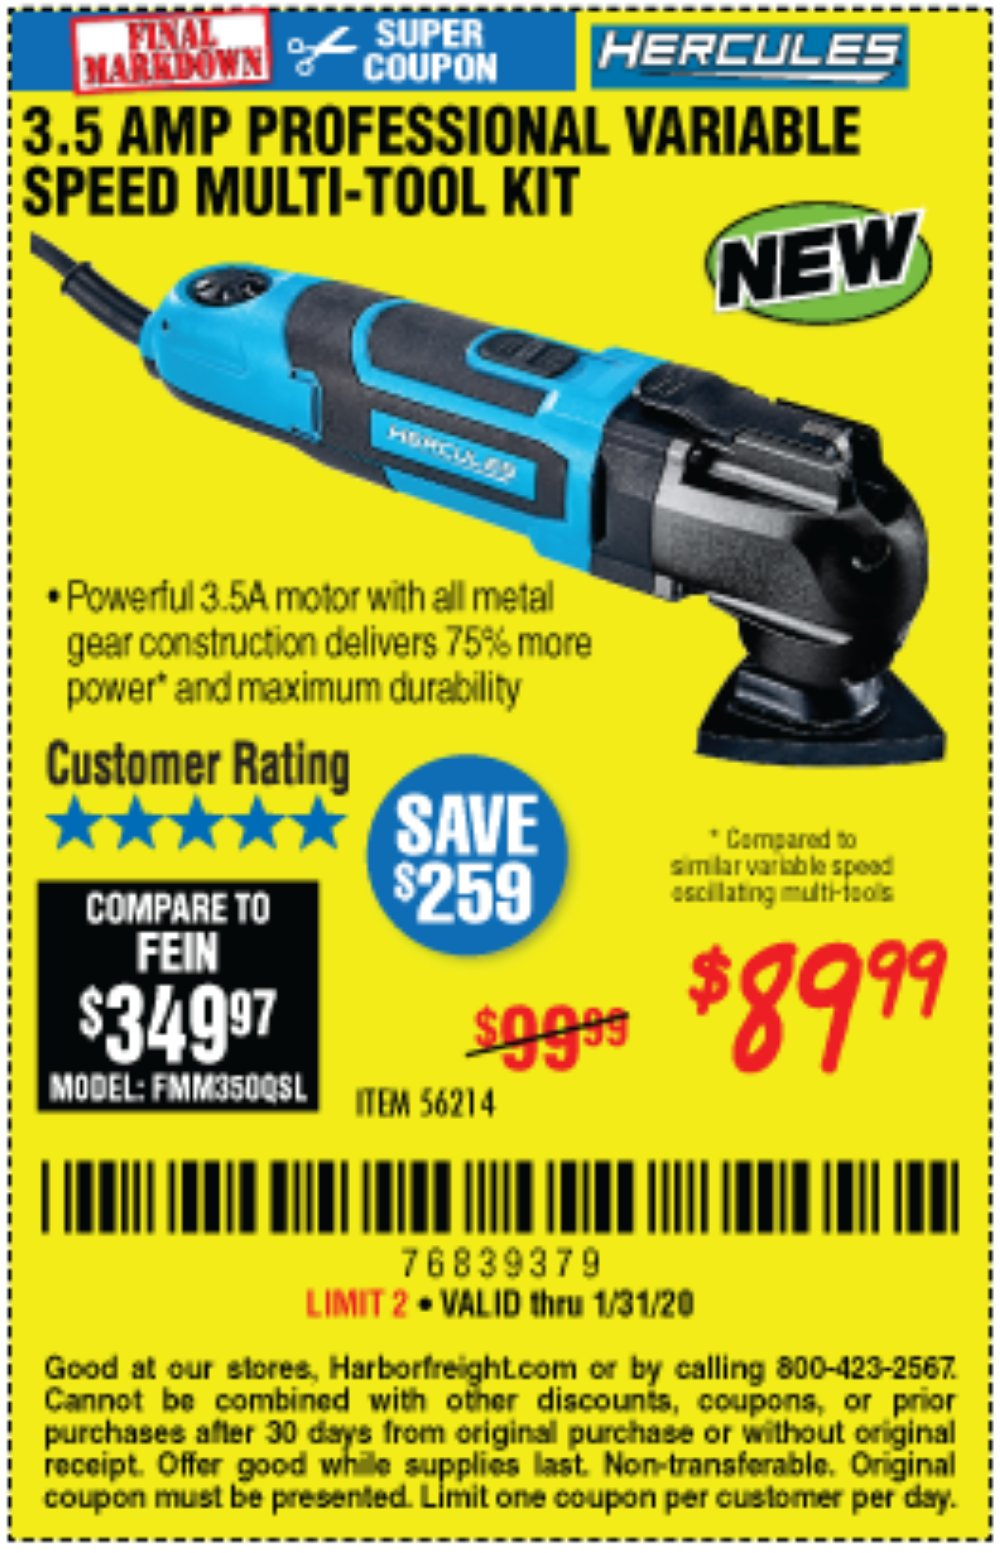 Harbor Freight Coupon, HF Coupons - 3.5 Amp Professional Variable Speed Multi-tool Kit